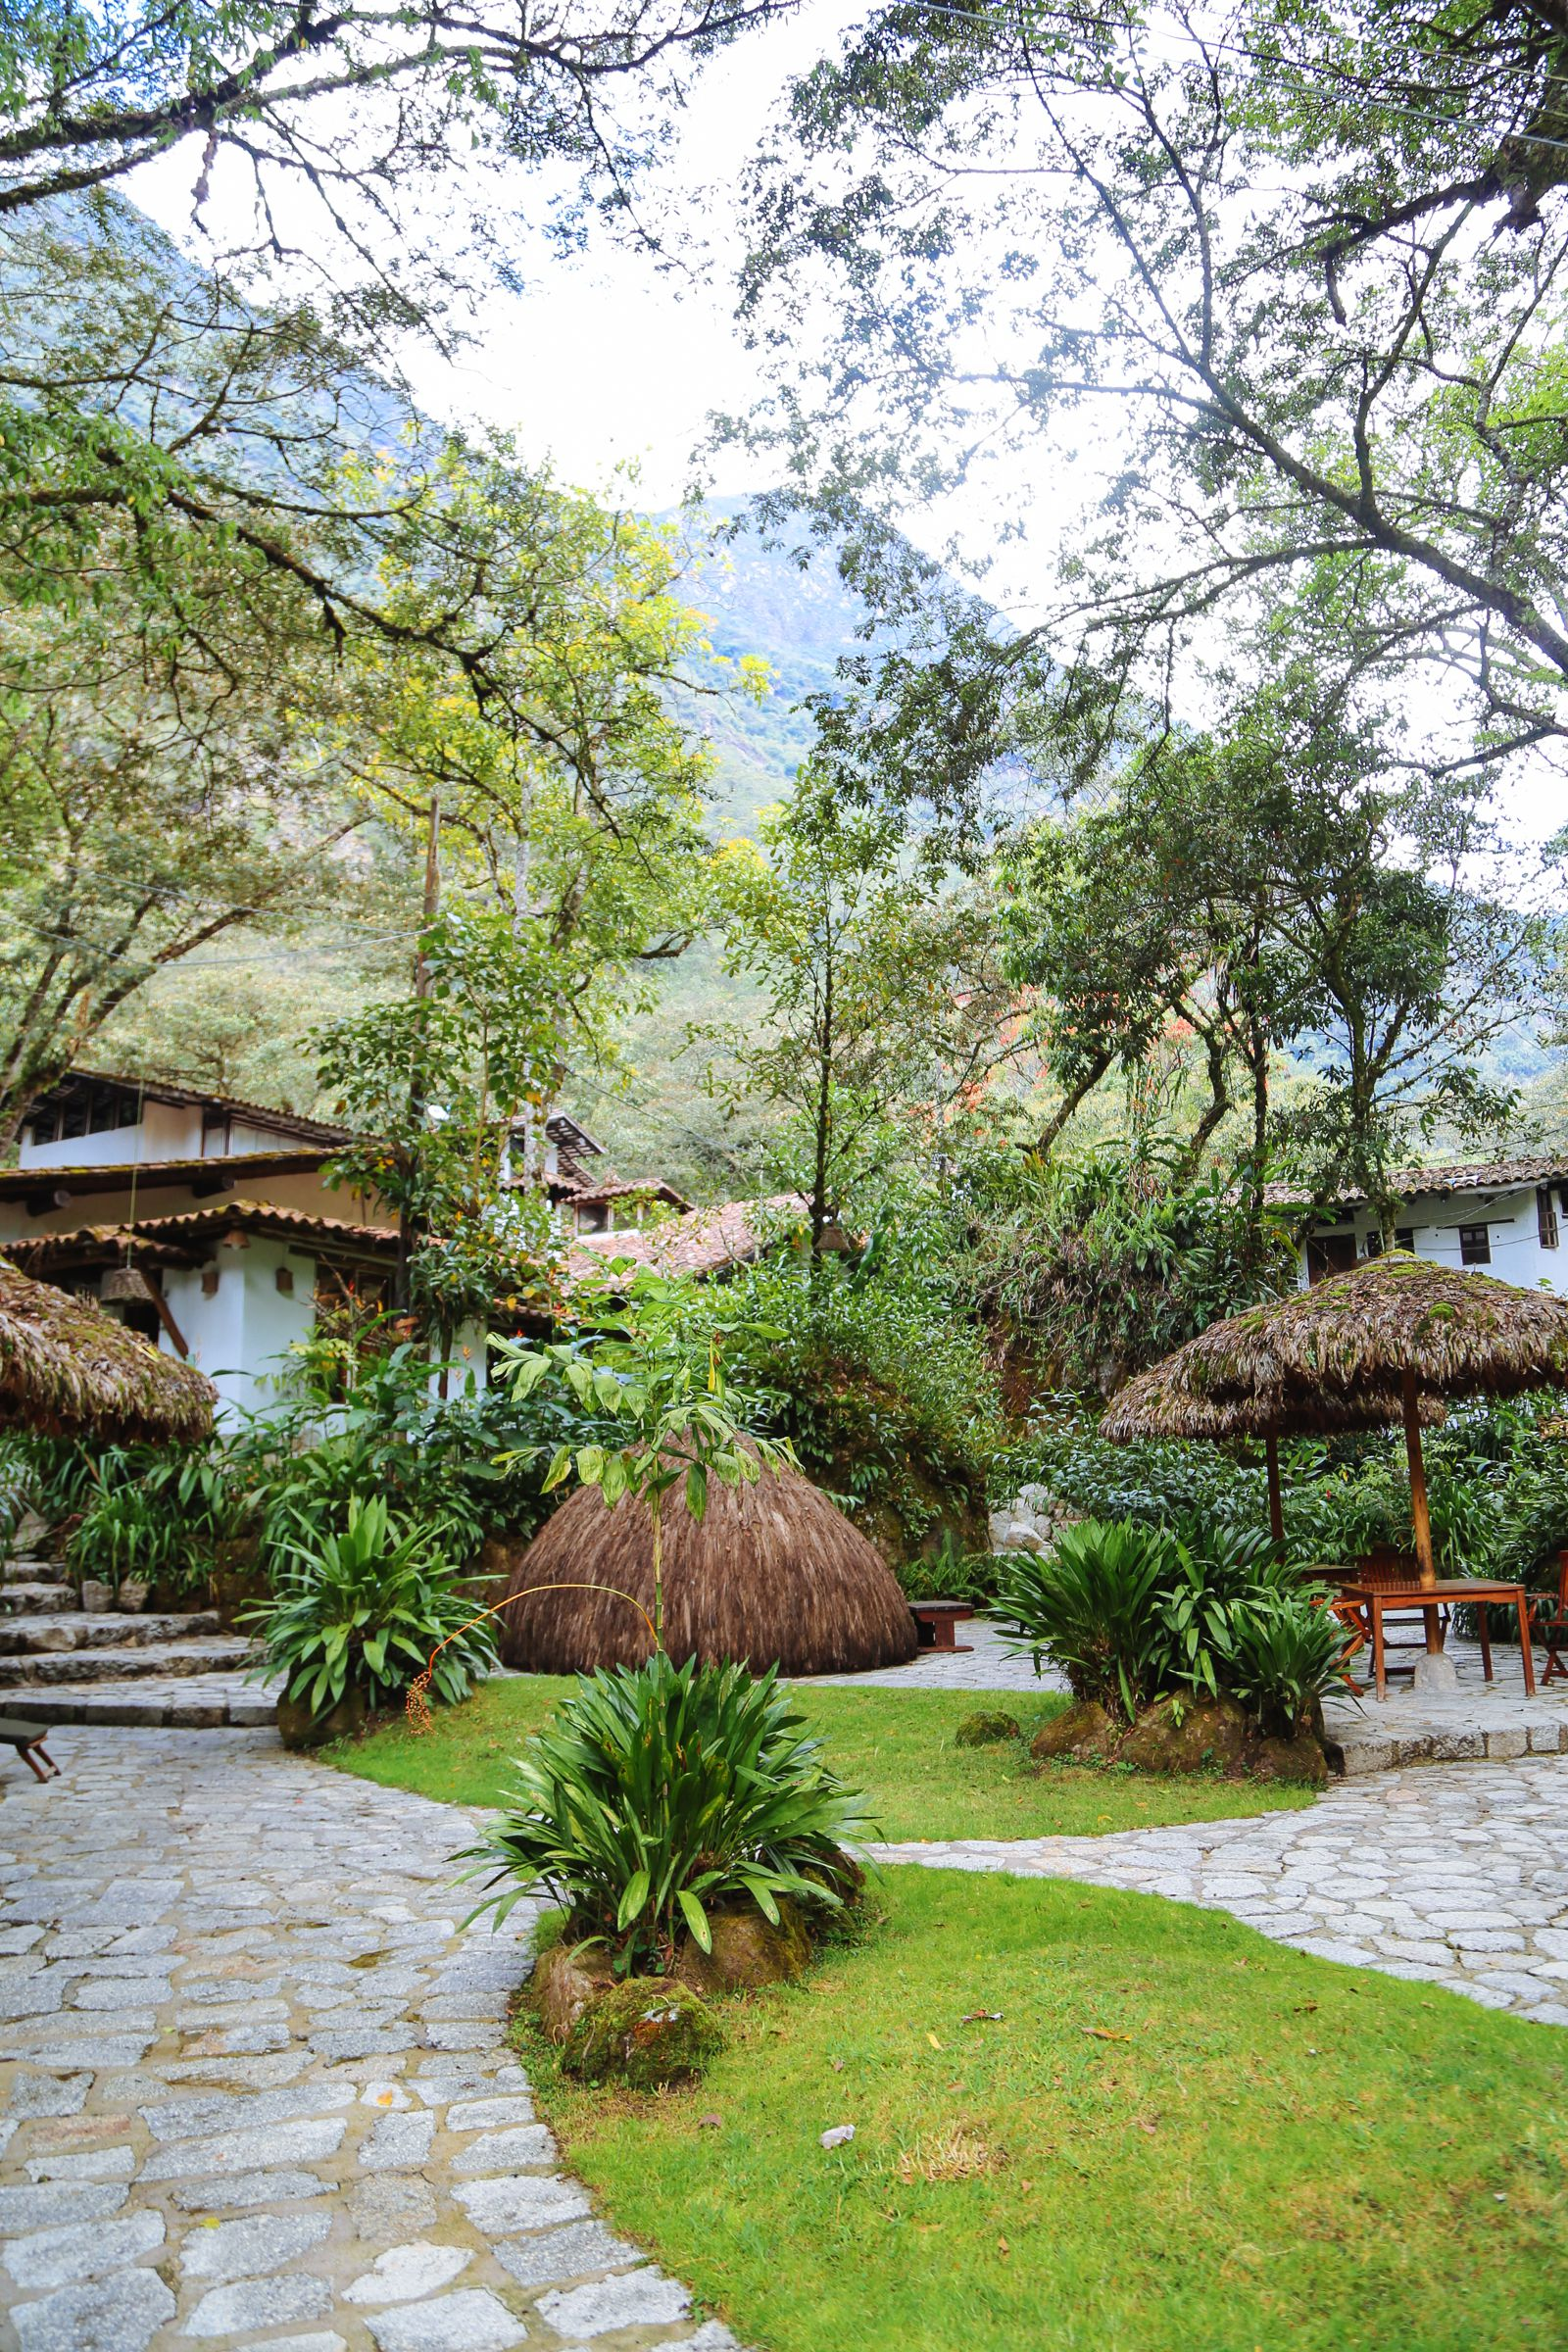 4 Amazing Ancient Inca Sights To See In Cusco And The Sacred Valley of the Incas (4)